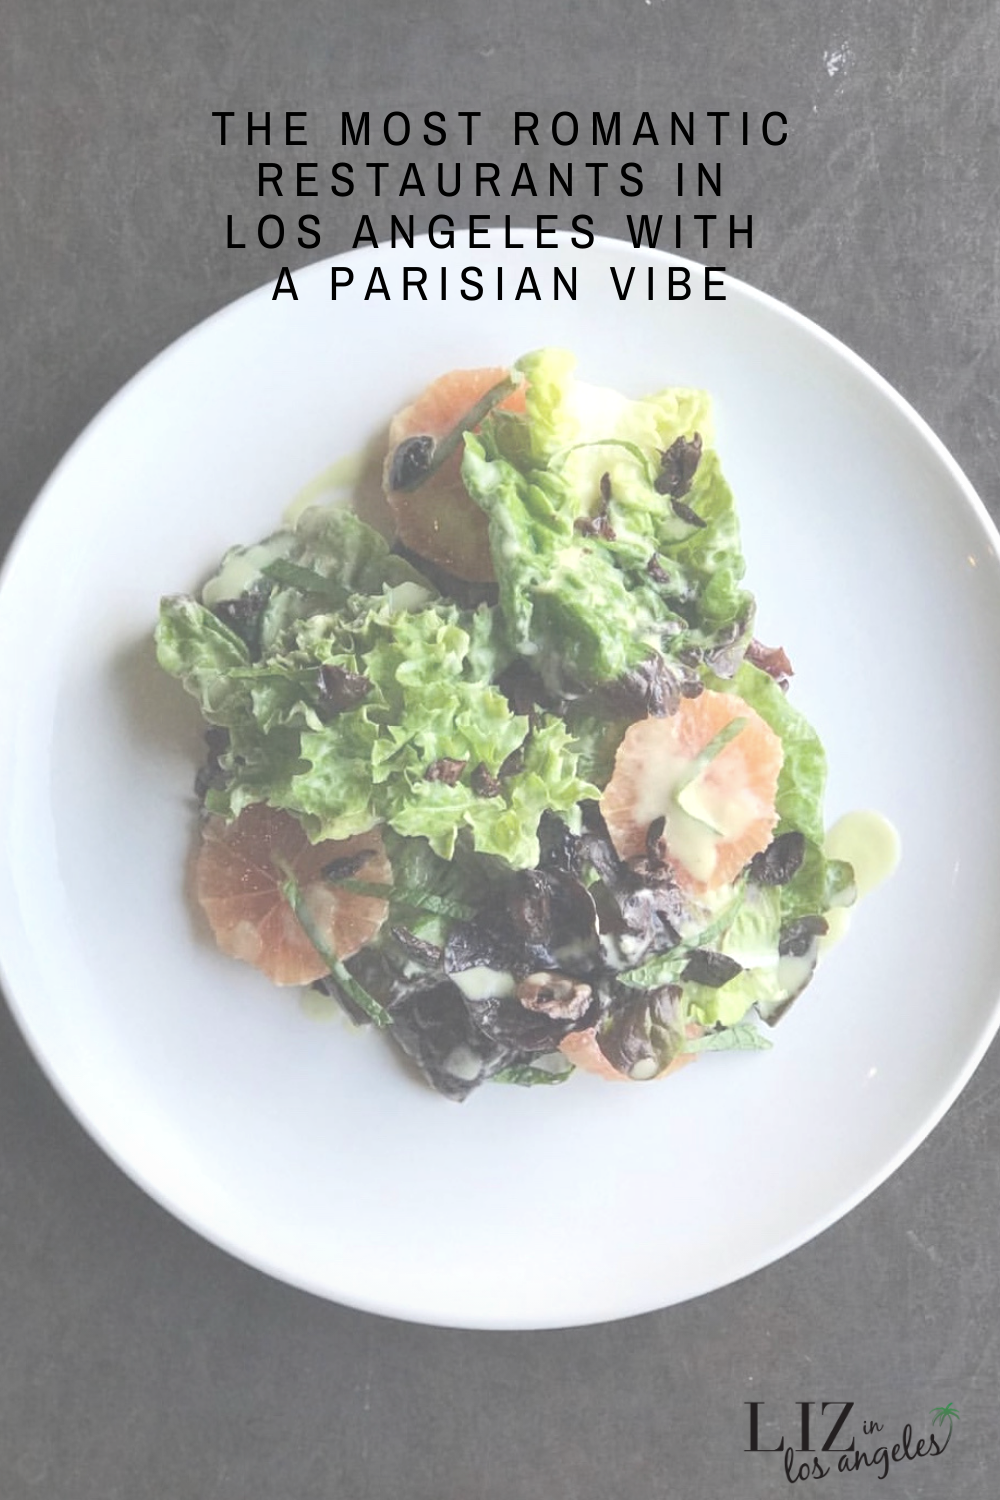 Most Romantic Restaurant in Los Angeles with a Parisian Vibe, a blog post by Liz in Los Angeles, Los Angeles Lifestyle Blogger: an image of French food